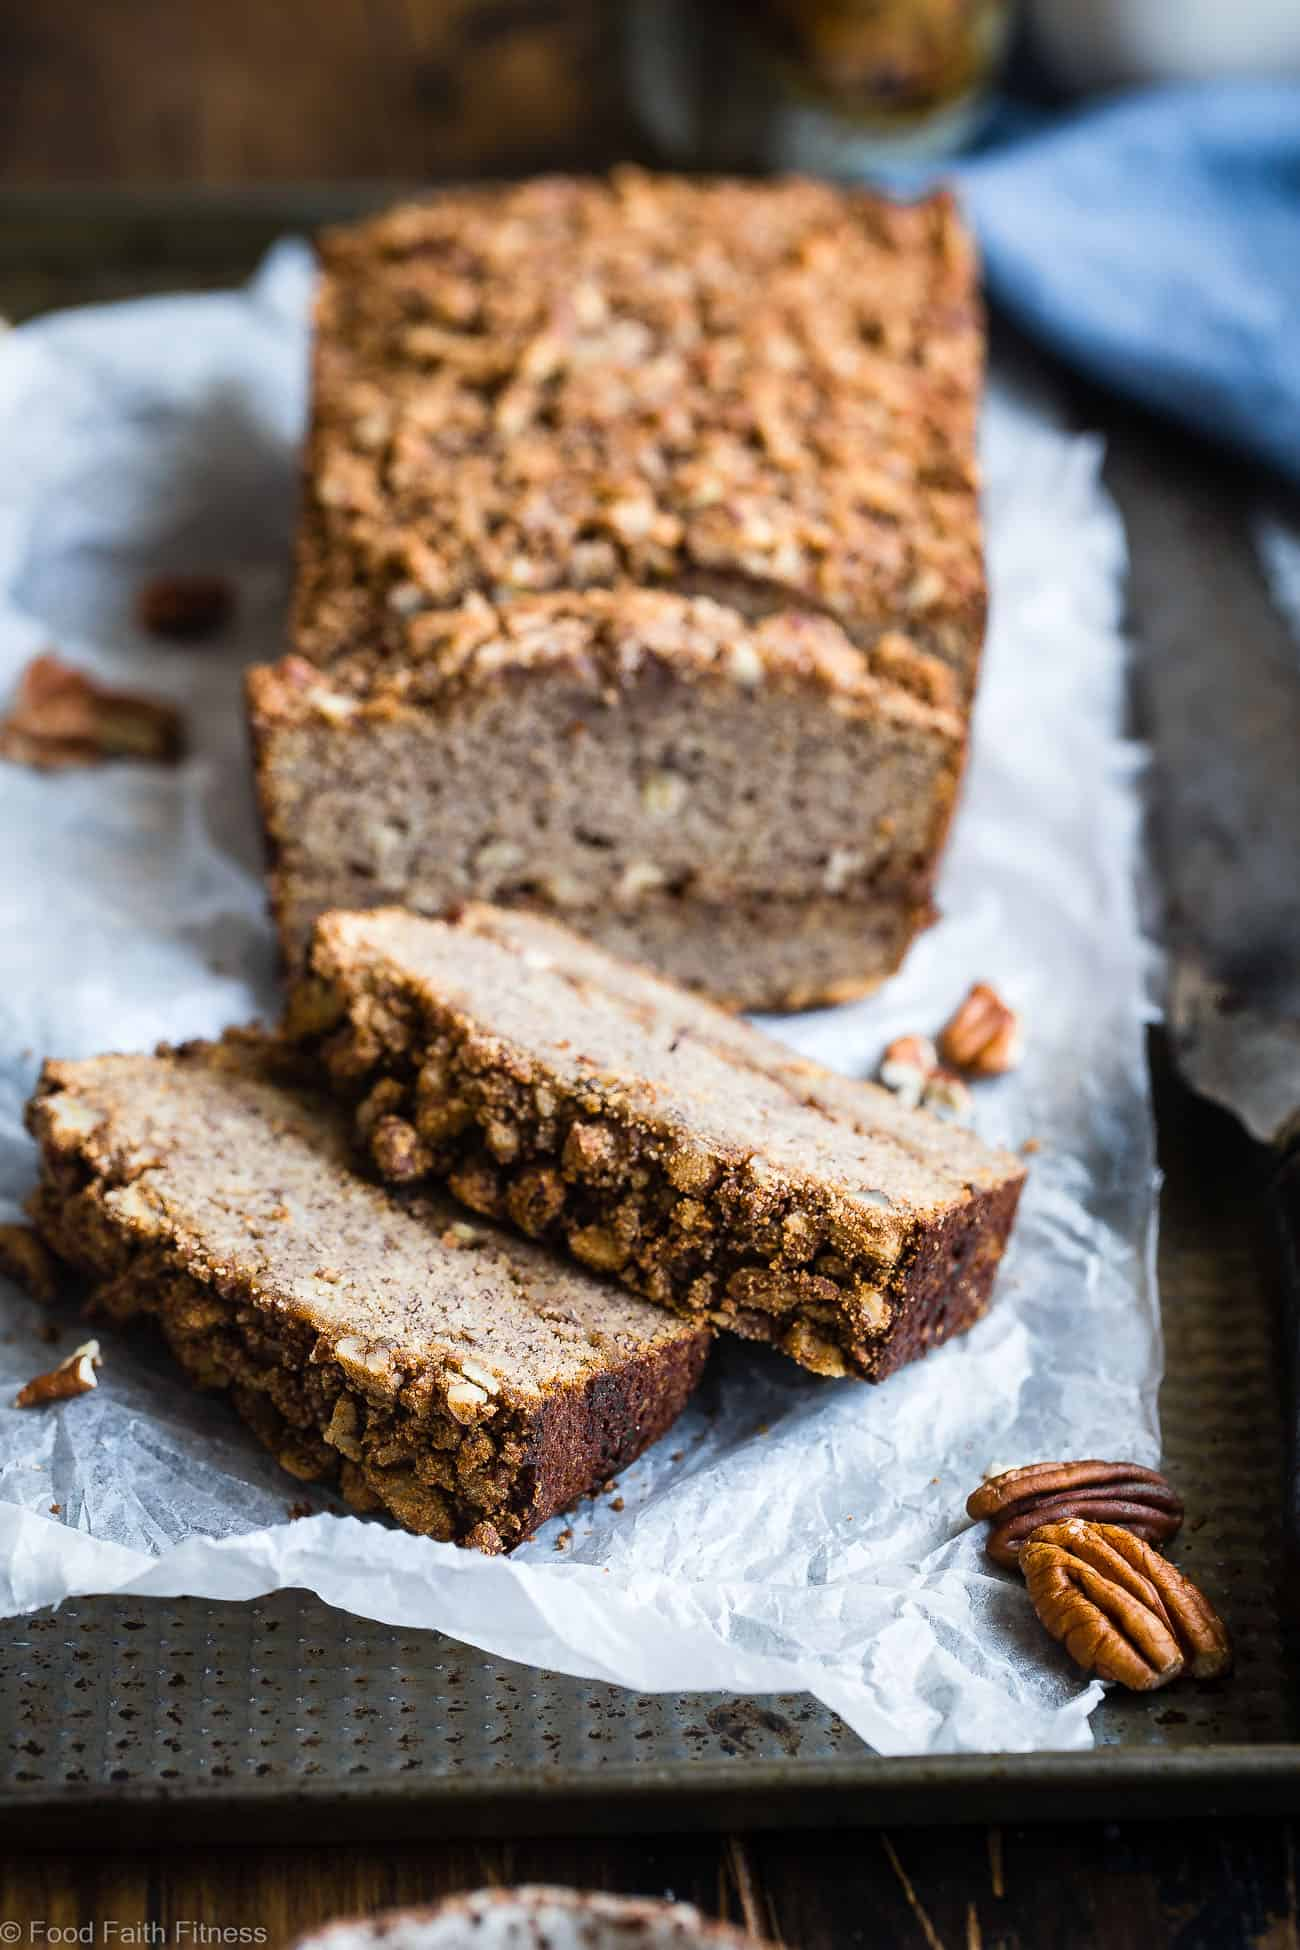 The Best Paleo Banana Bread with Pecan Streusel -This easyPaleo Coconut Flour Banana Bread with coconut flour is gluten/grain/dairy/refined sugar free but perfectly moist and sweet! The pecan topping MAKES it so addicting and you'll never know it's healthy! | Foodfaithfitness.com | @FoodFaithFit